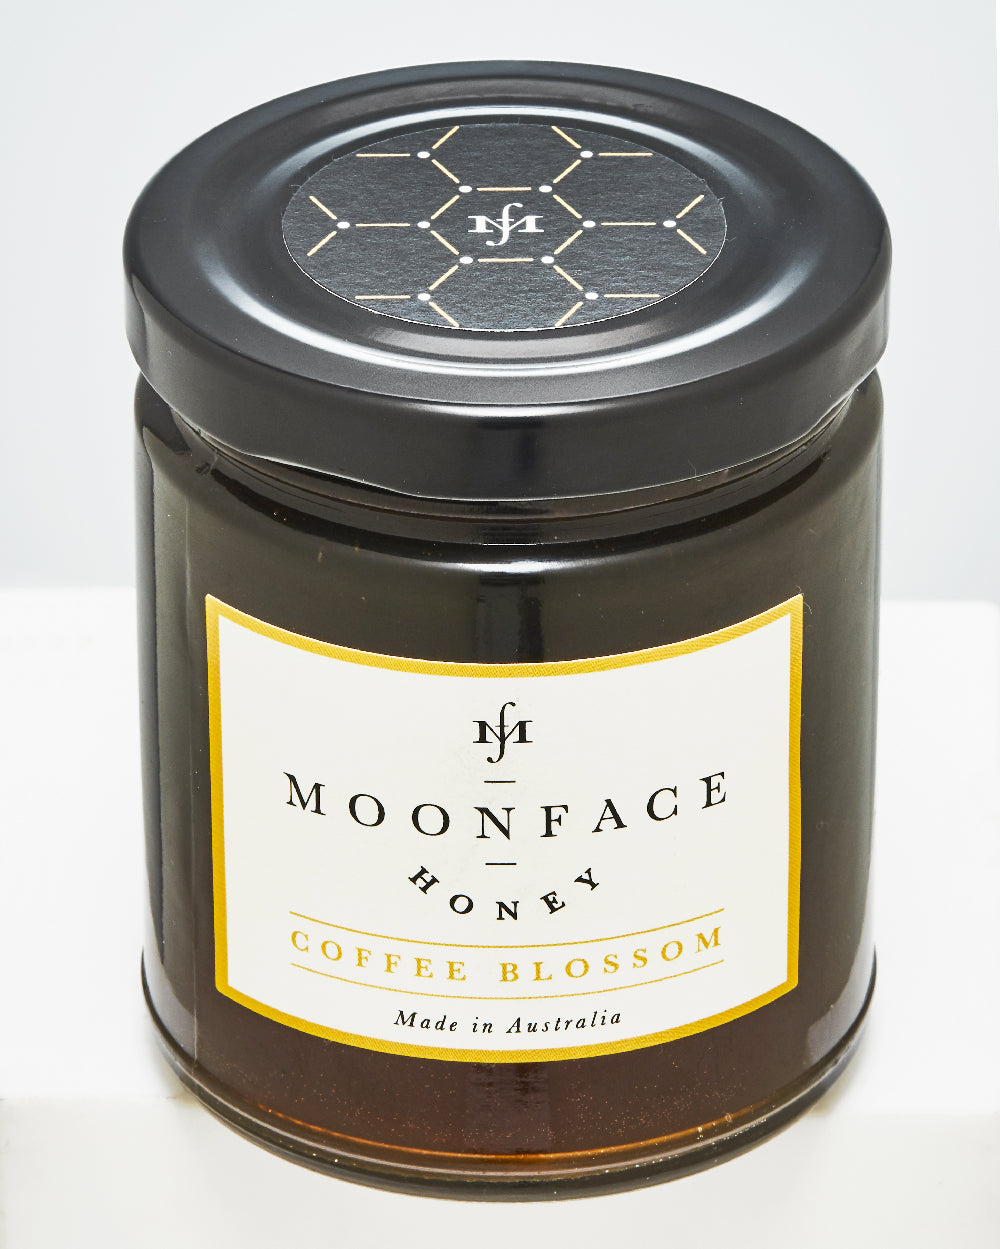 Moonface coffee blossom honey 350 gram jar